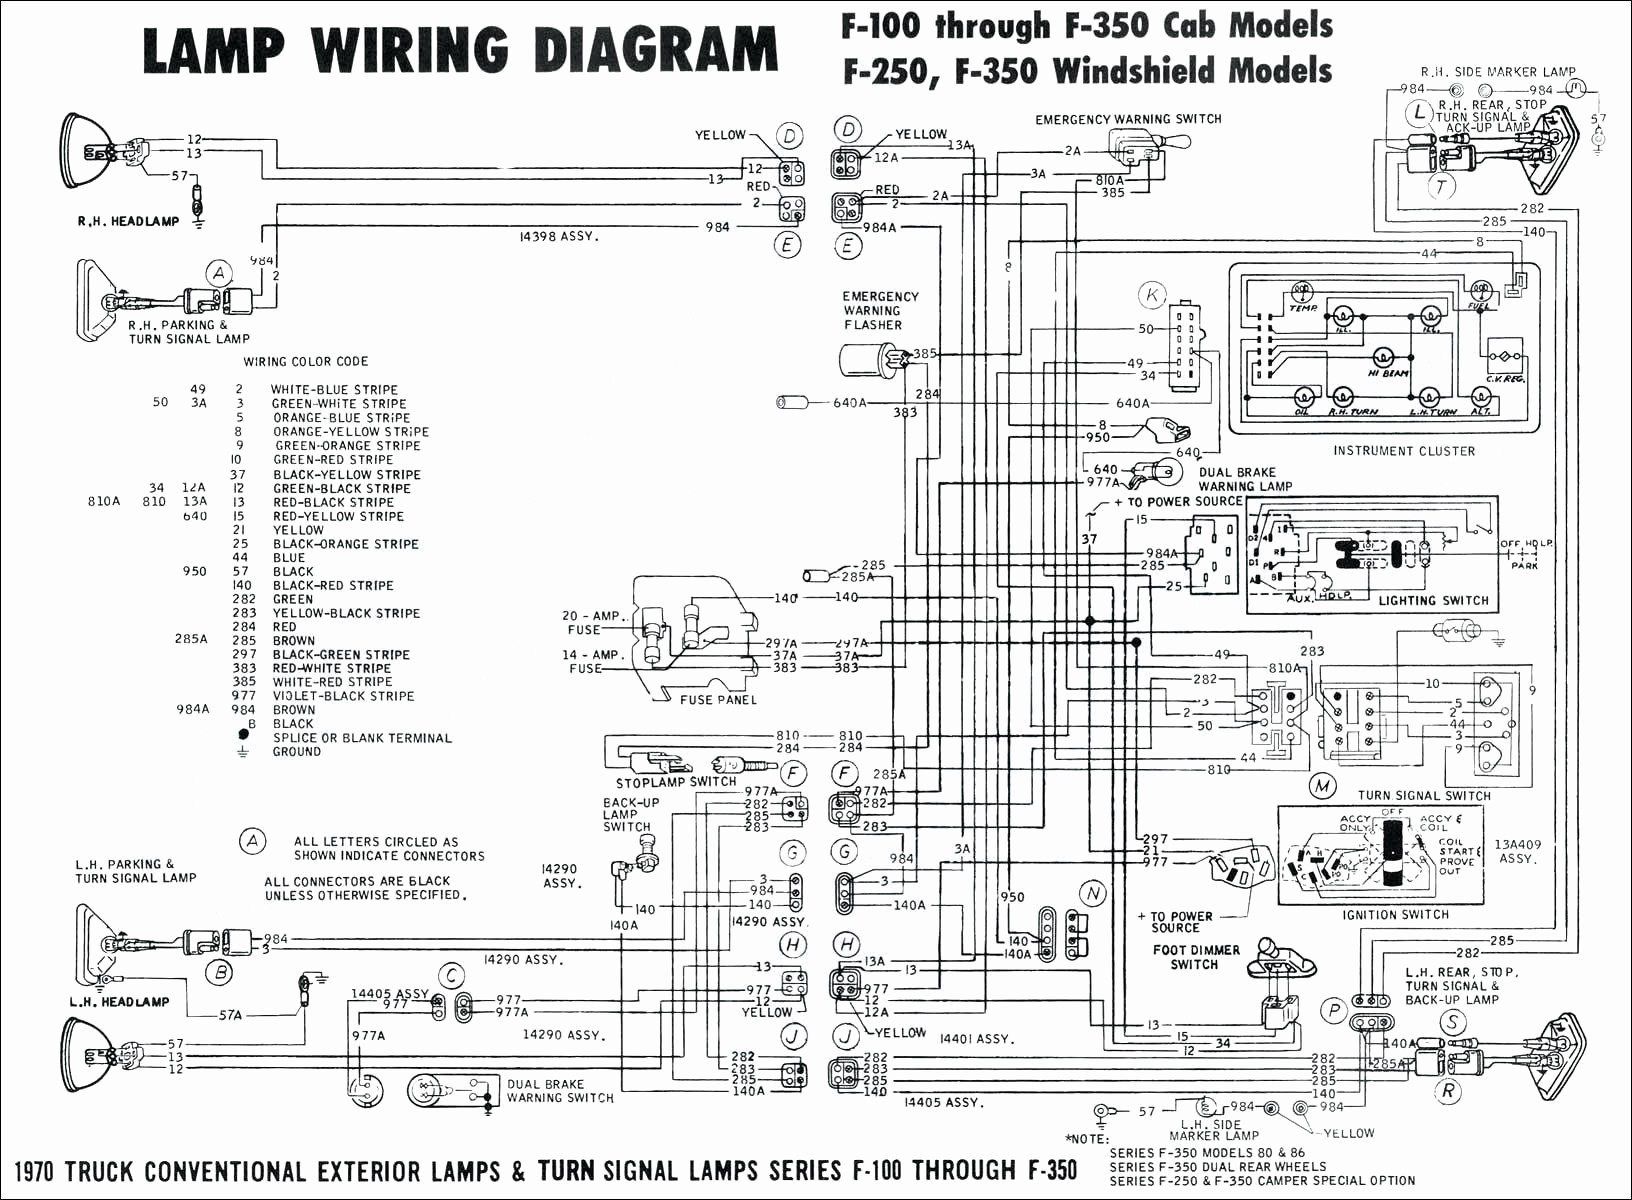 wo_5602] t wiring diagram altec download diagram altec ta60 wiring diagram altec lansing atp3 din connector phae.endut.blikvitt.org